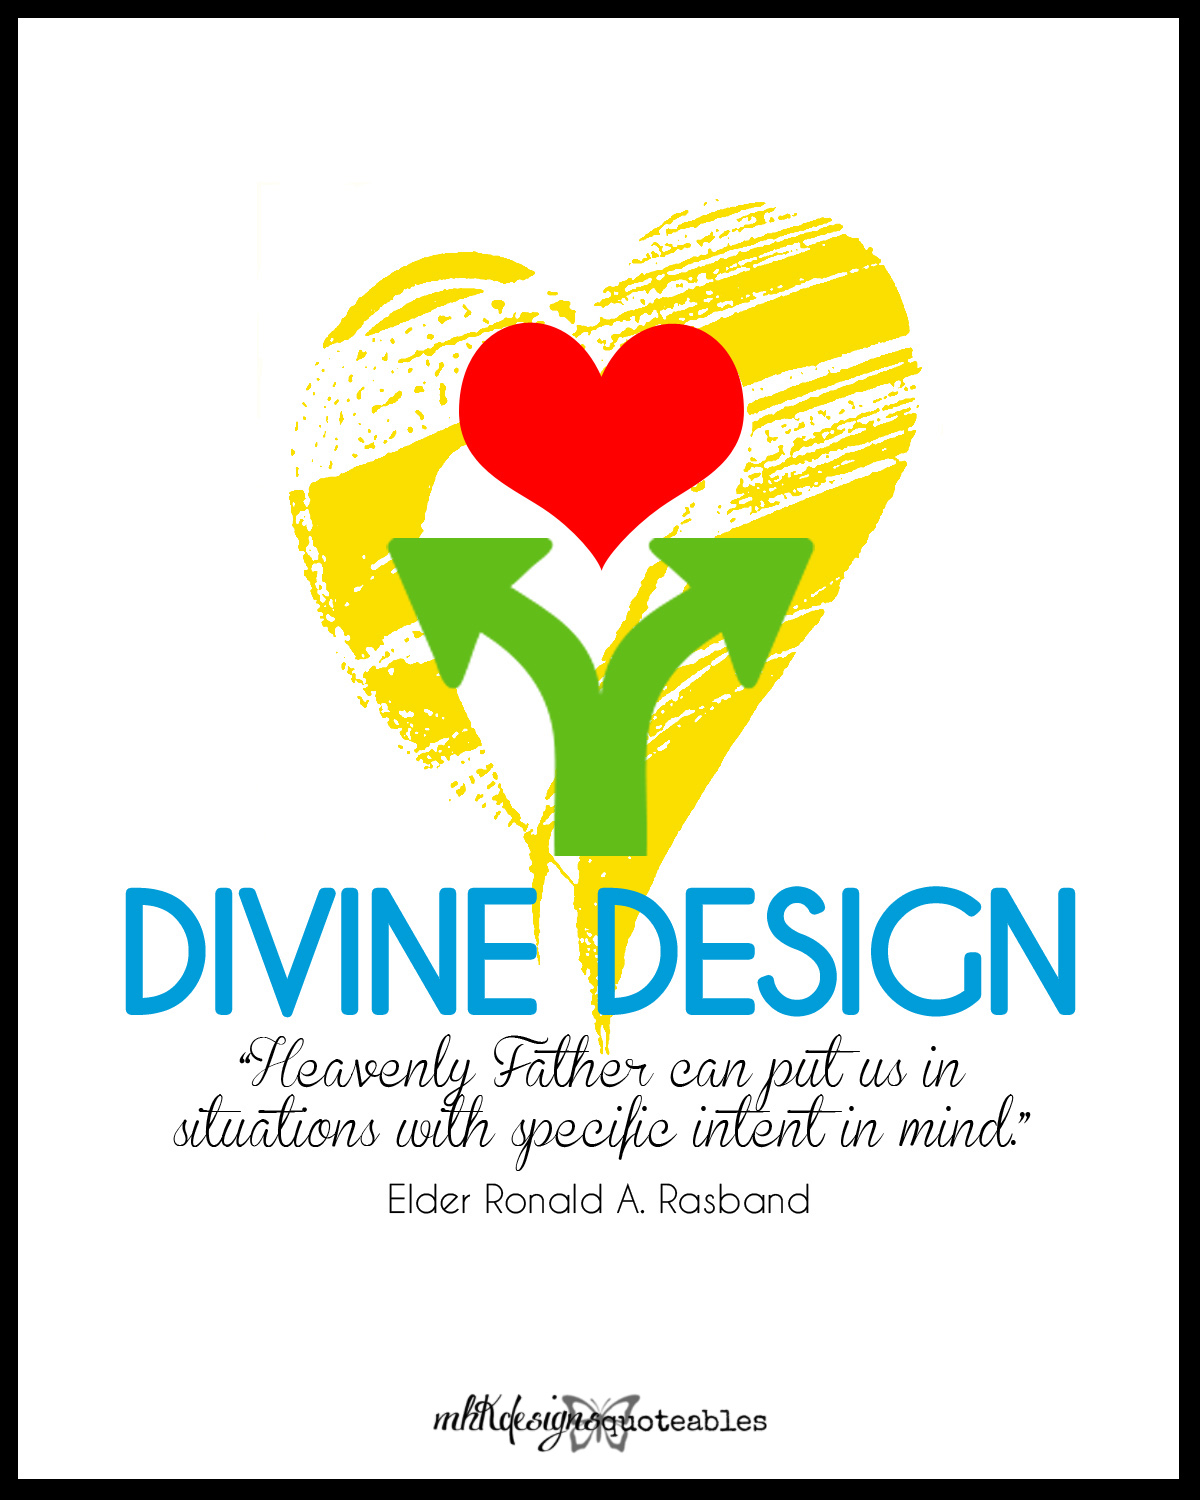 my divine design Create your account sample divinedesign with a free trial membership for 7 days before deciding to join enter your first name, email address, and password to start.